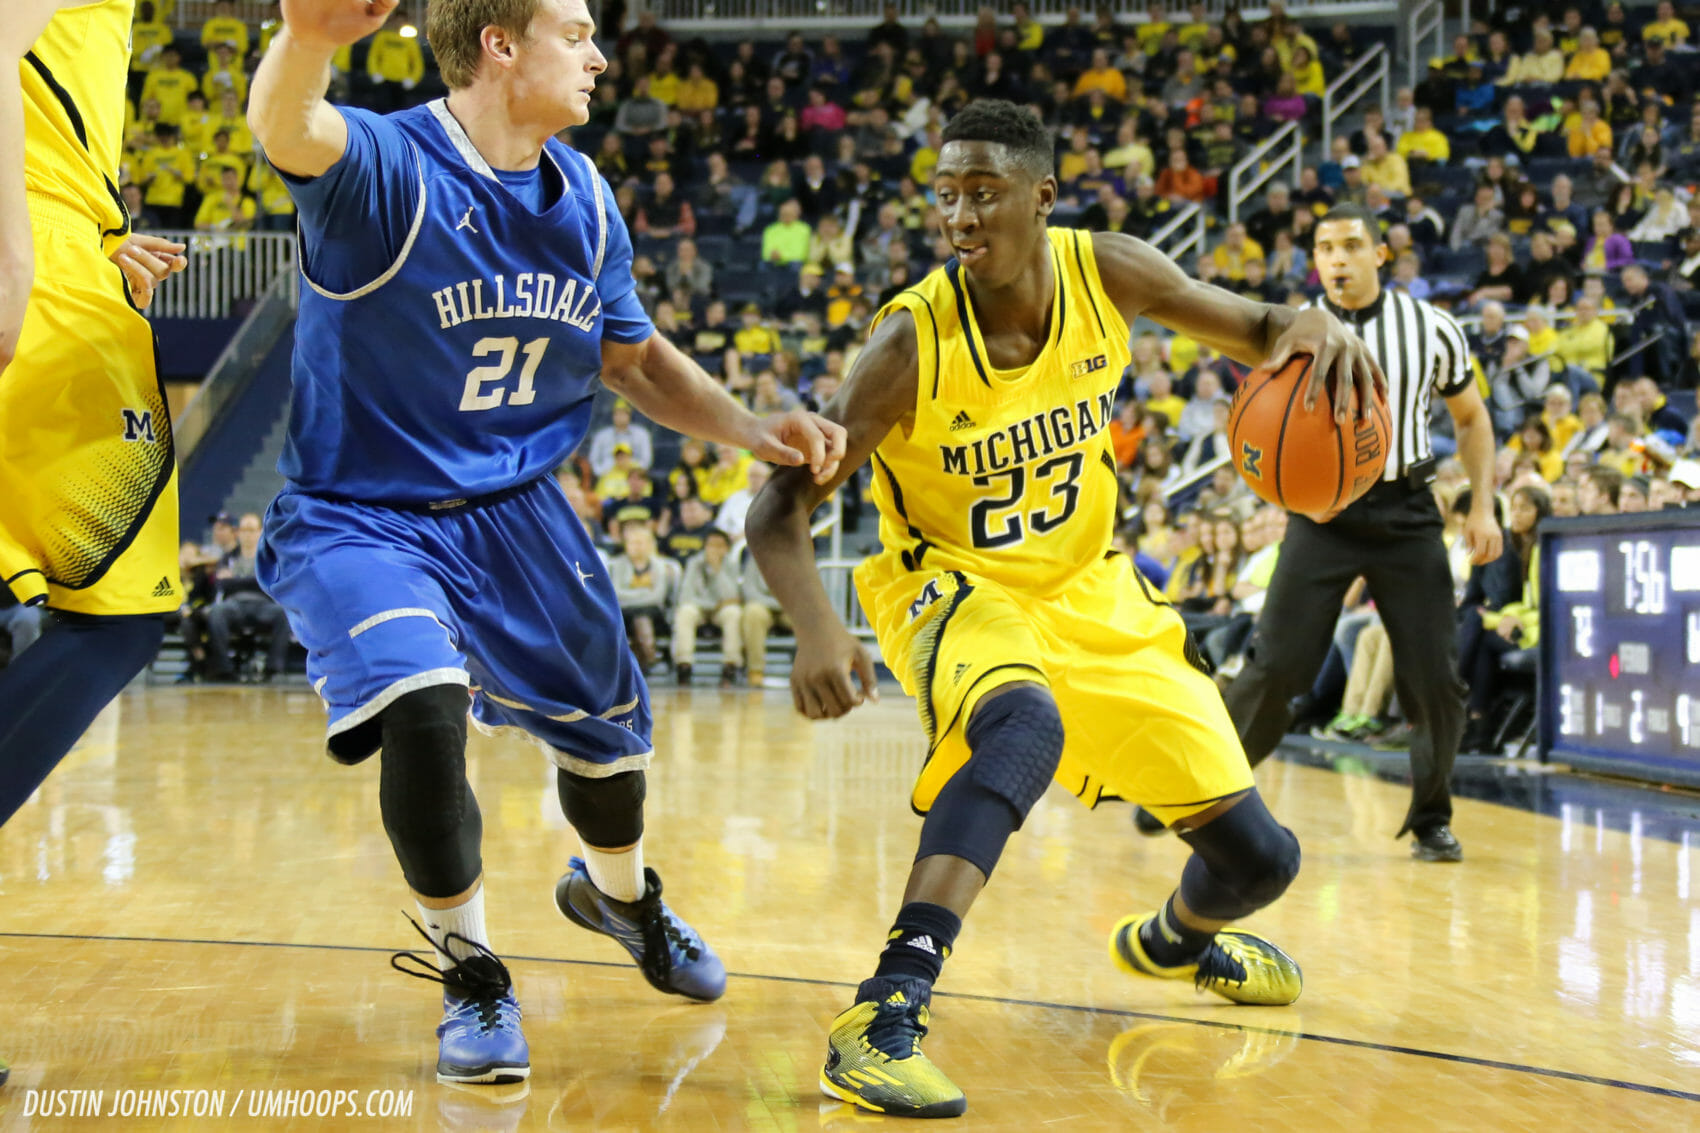 Michigan 92, Hillsdale 68-29